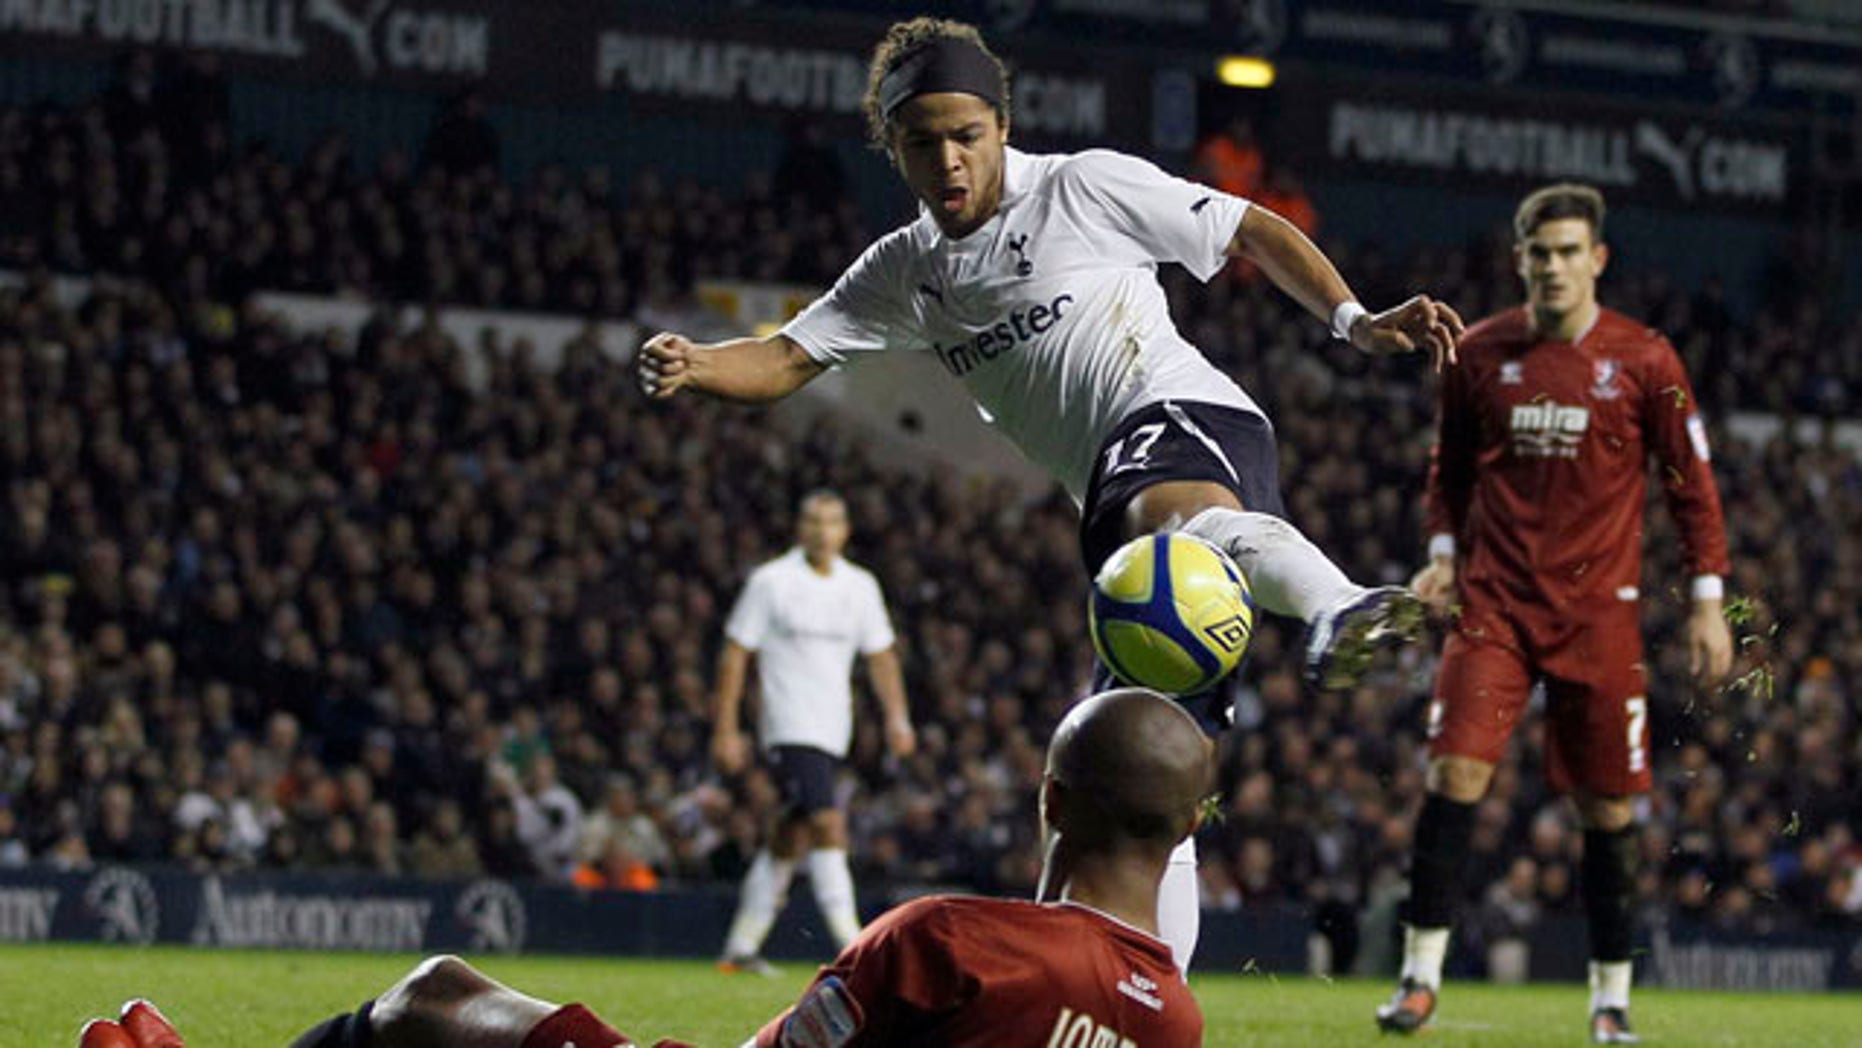 Tottenham Hotspur's Giovani Dos Santos, top, vies for the ball with Cheltenham Town's Sido Jombati during the English FA Cup third round soccer match at White Hart Lane Stadium in London, Saturday Jan. 7, 2012. (AP Photo/Kirsty Wigglesworth)